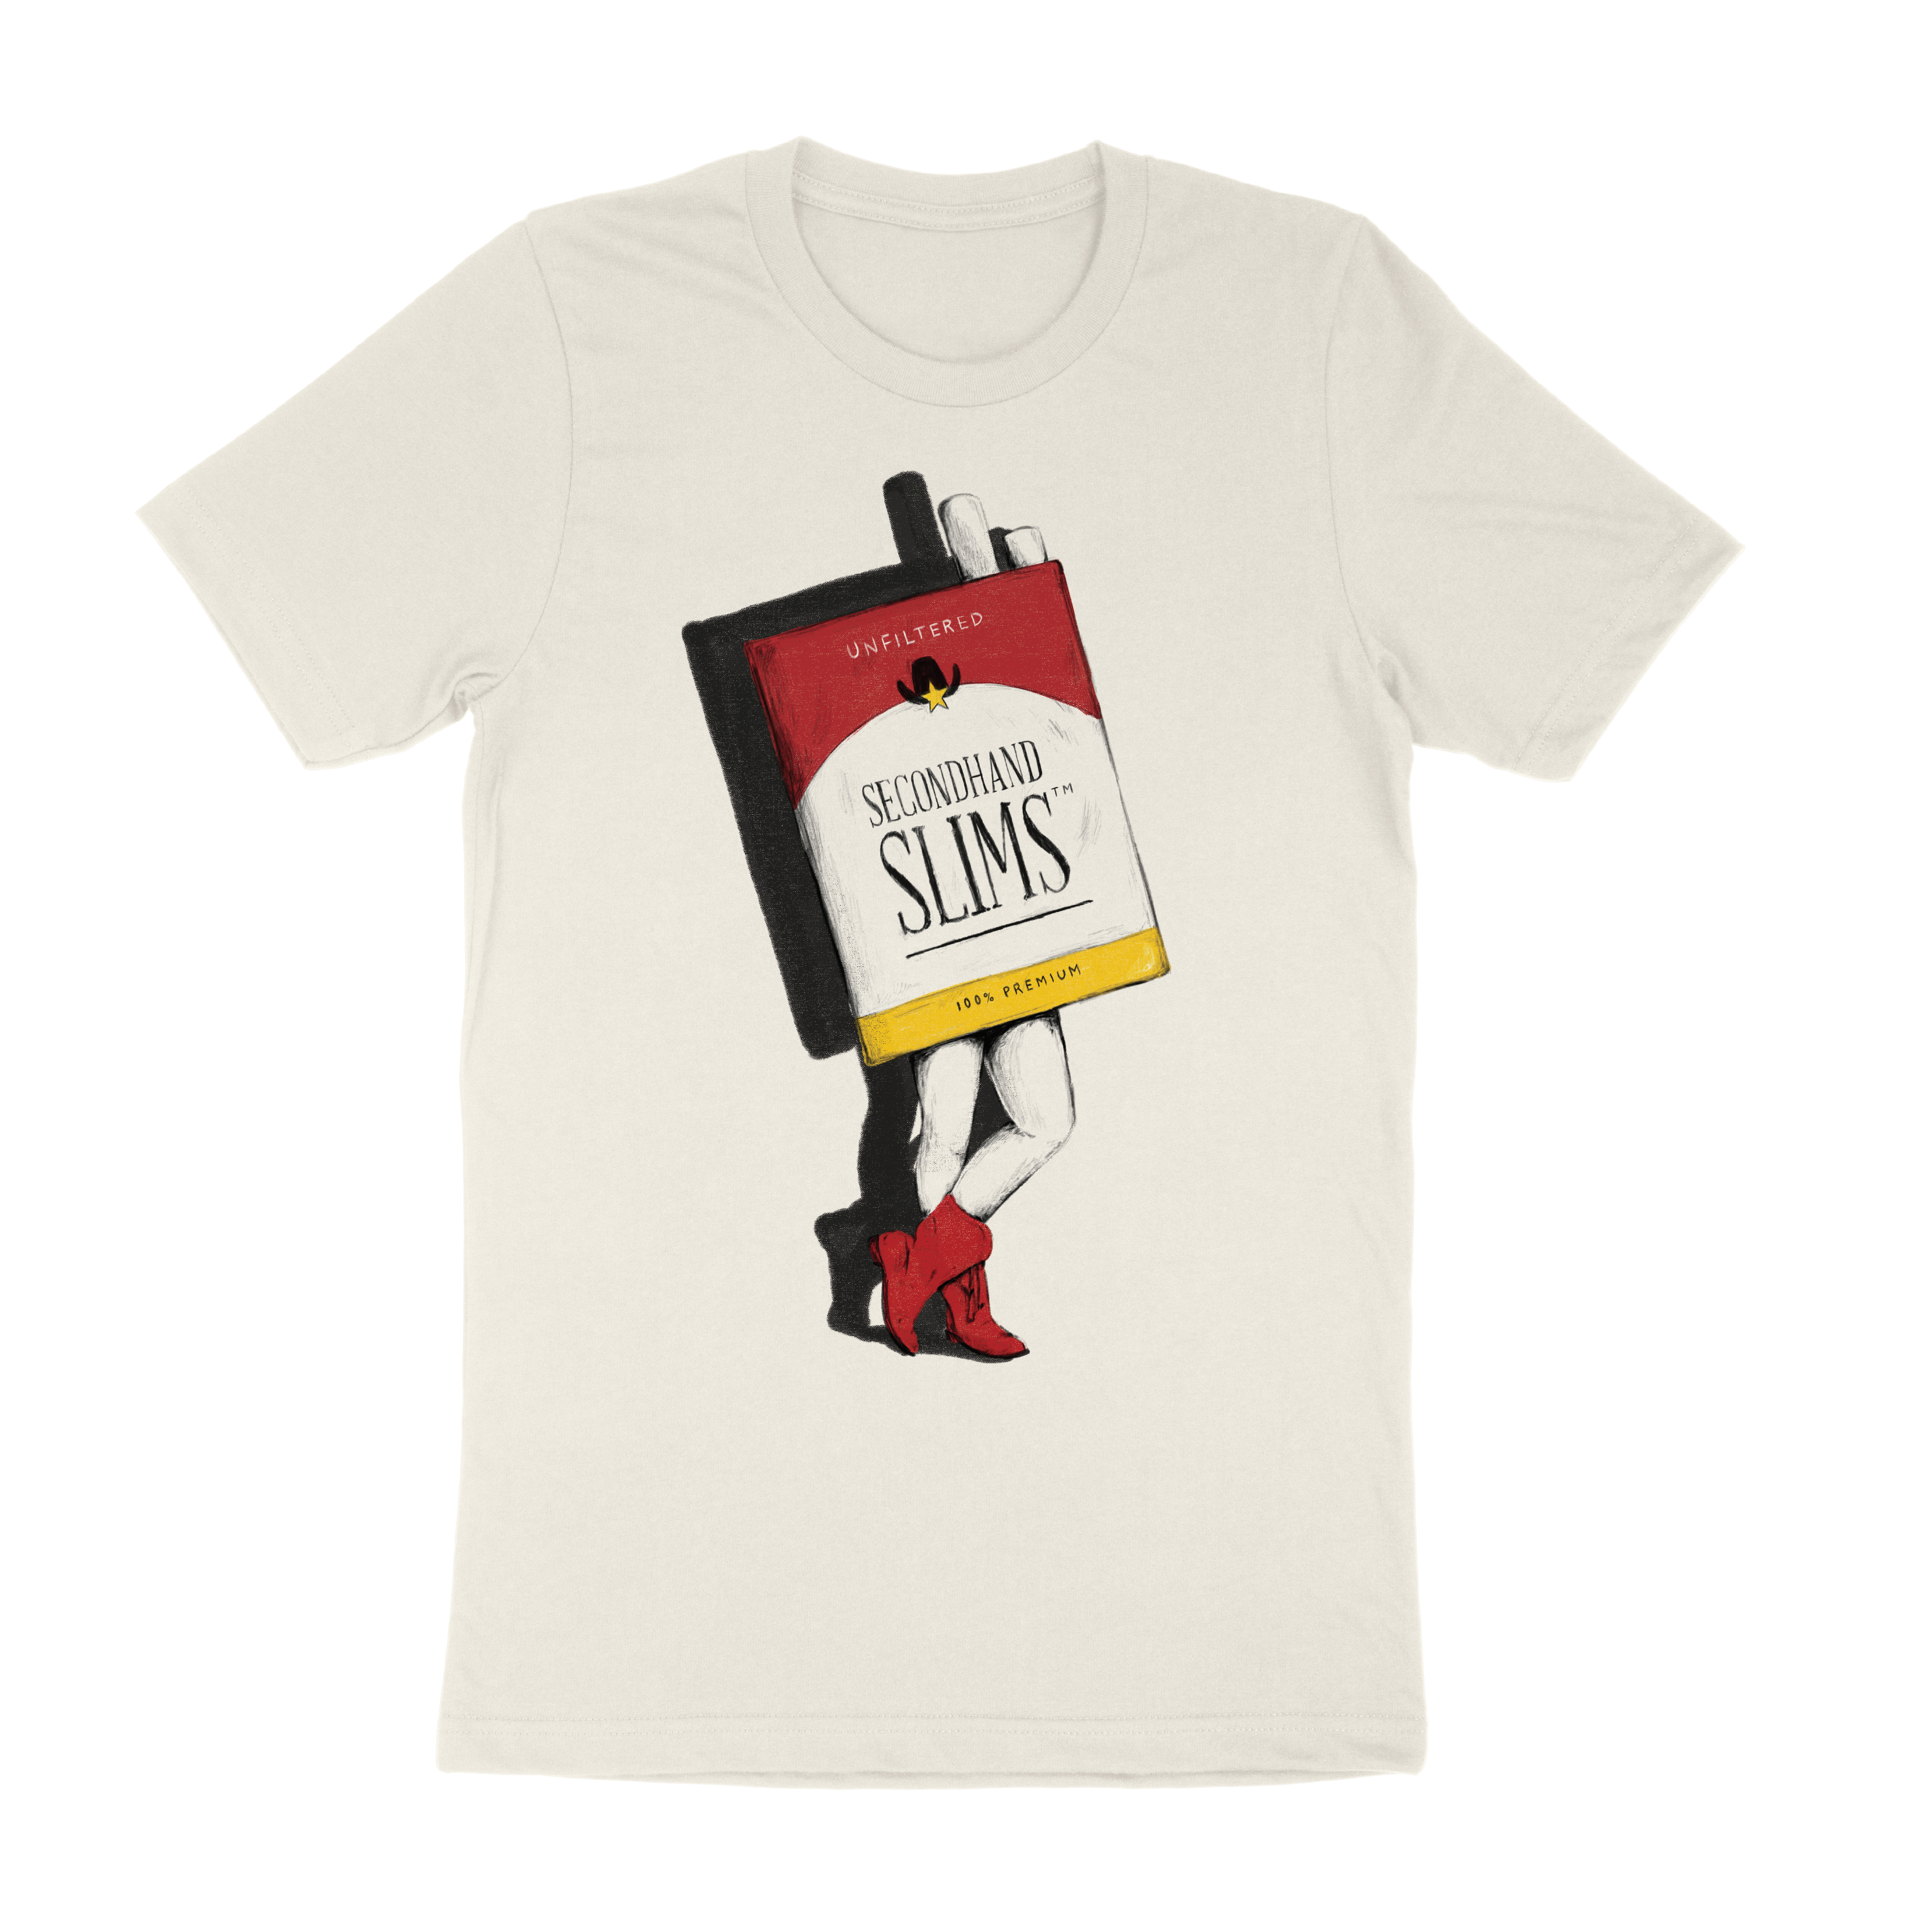 Secondhand Slims Tee